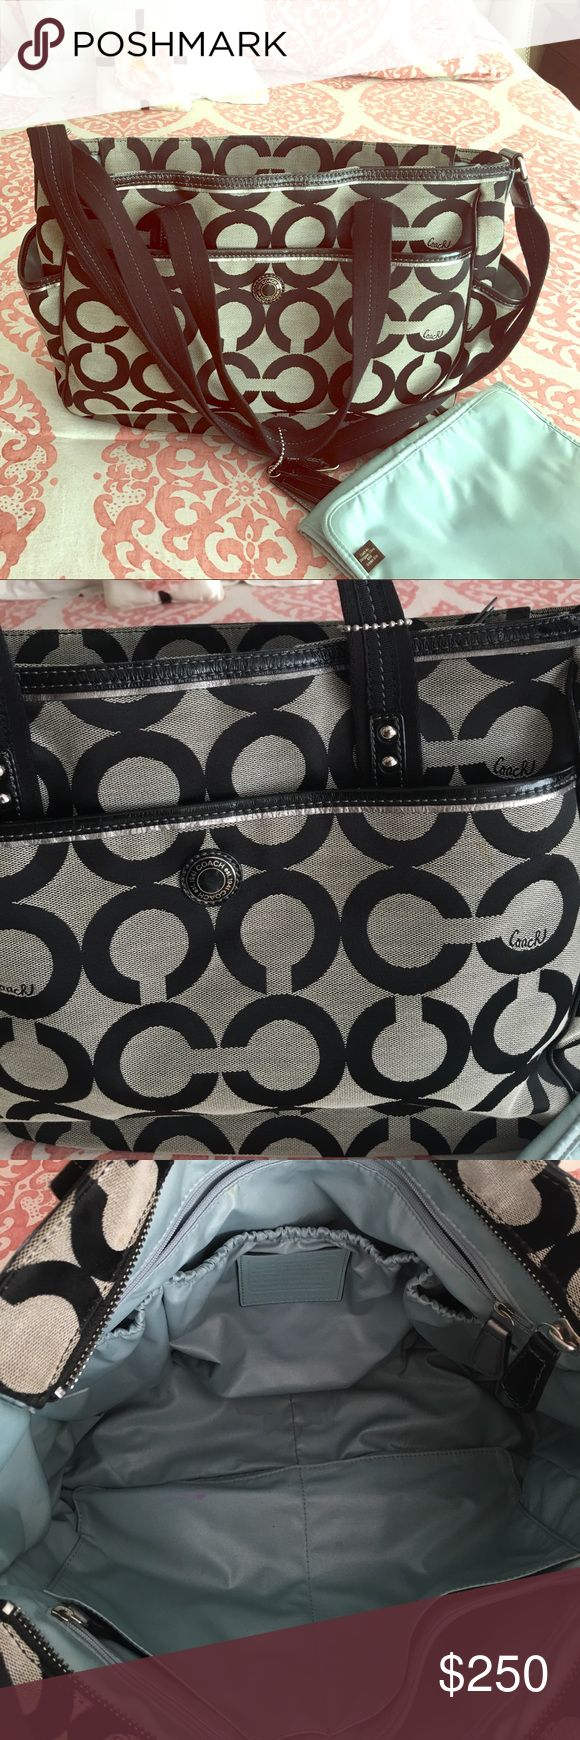 Coach diaper bag Signature monogram coach diaper bag in black. Has a baby blue interior. Comes with changing pad. This bag is in pretty great condition. There are some small stains on the inside minor minor ones on the outside as pictured. Otherwise it looks like new! If making an offer please keep in mind that posh does keep 20%. Thank you! Coach Bags Baby Bags